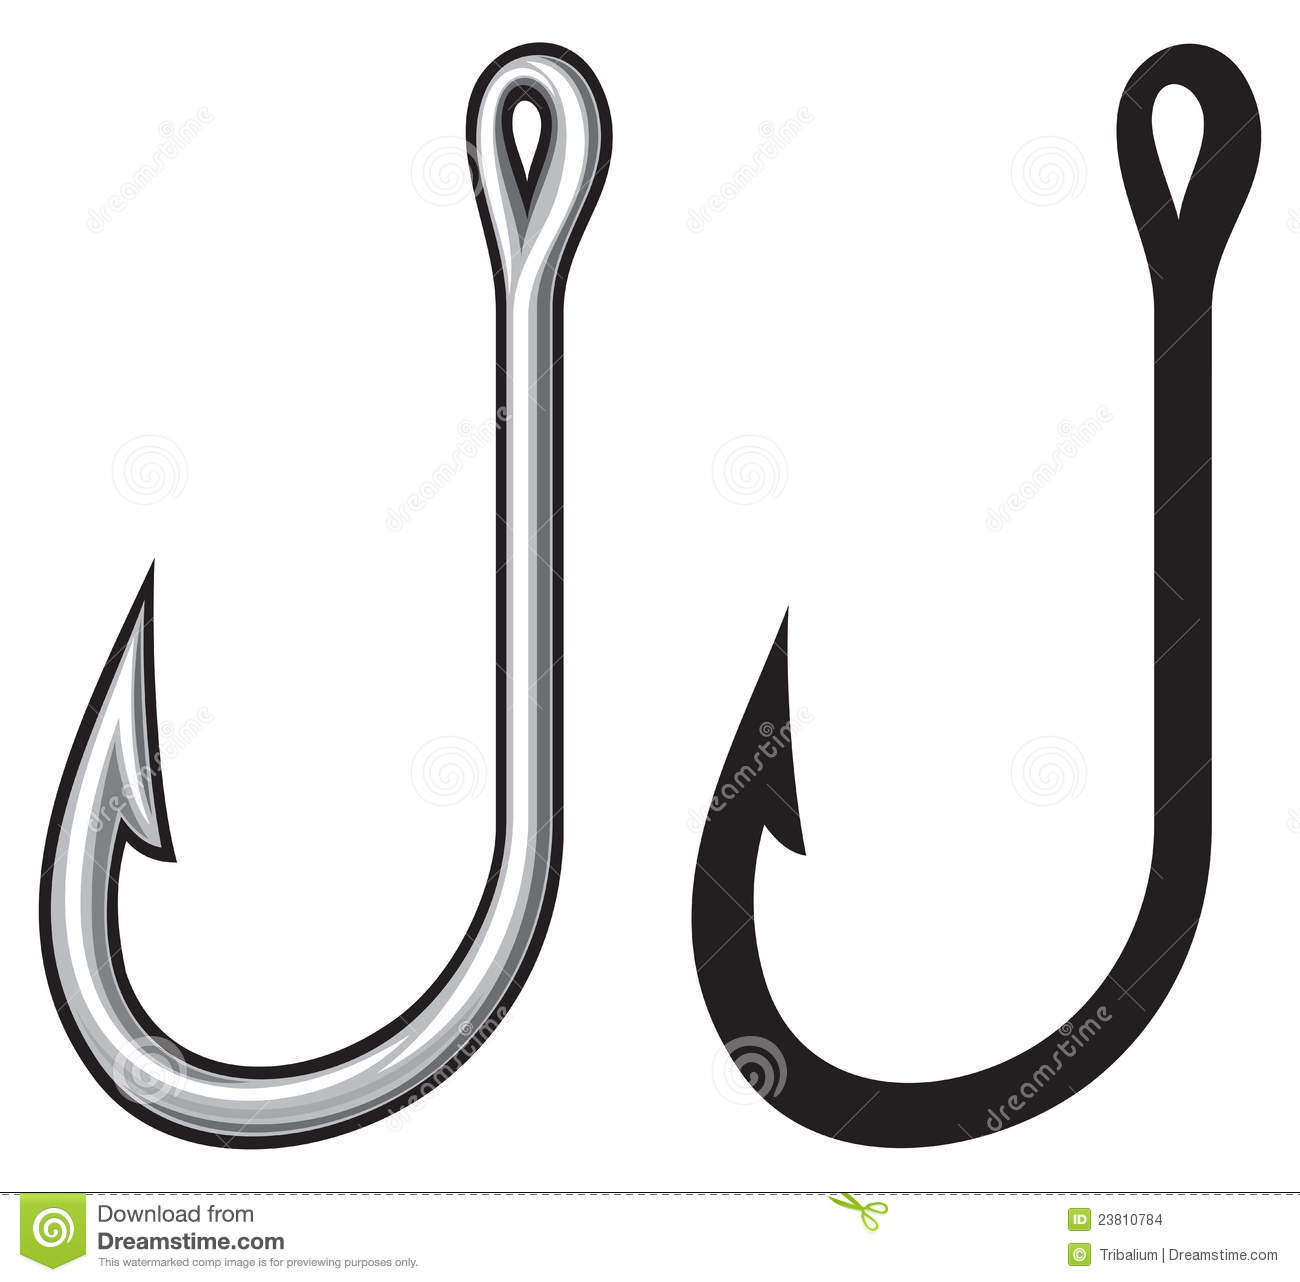 Hooks clipart clip art free library Hook Clipart   Clipart Panda - Free Clipart Images clip art free library